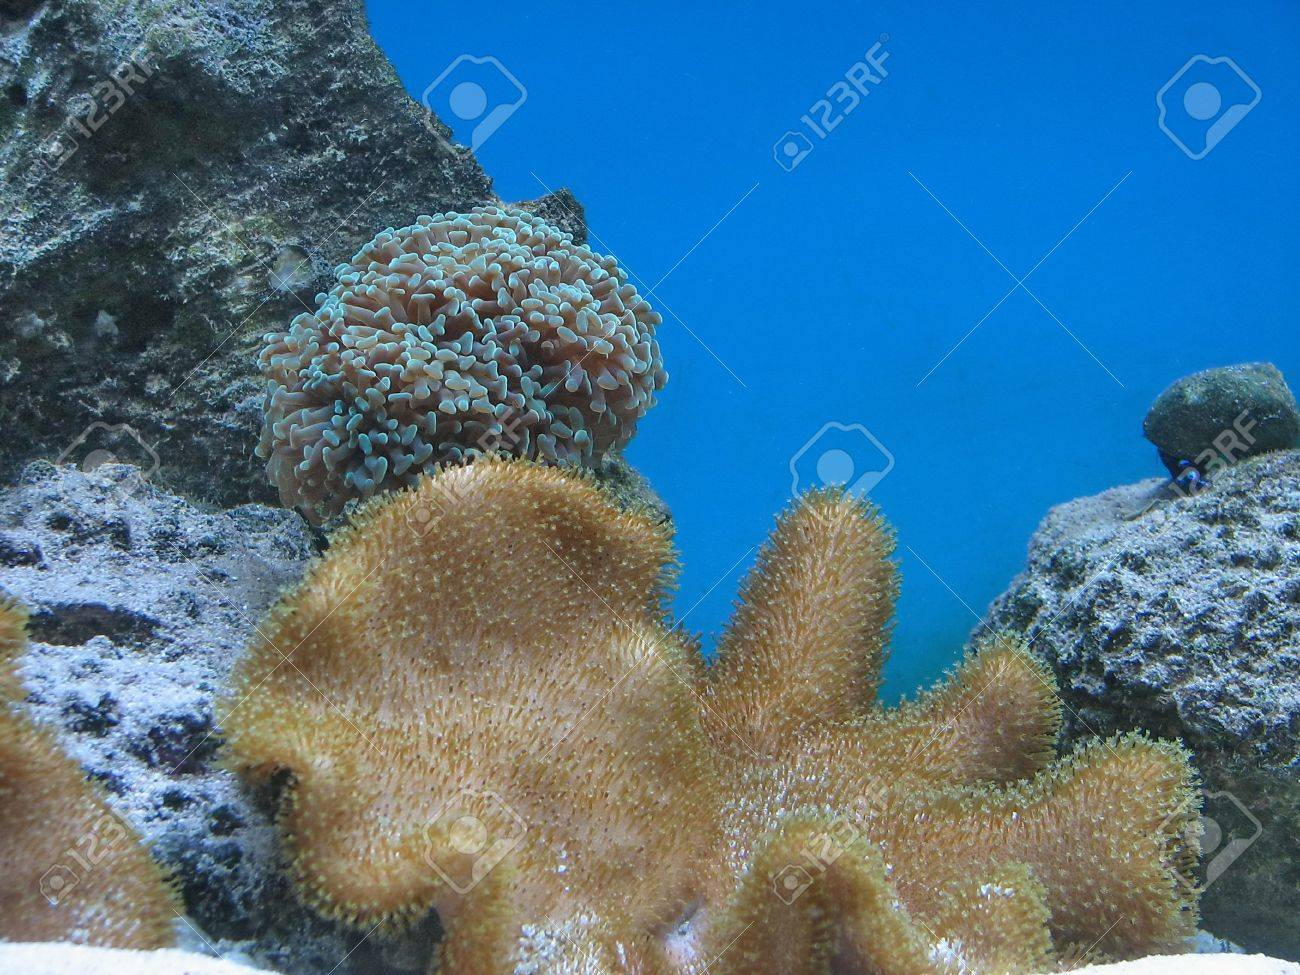 Colorful coral reef with many different types of corals stock photo colorful coral reef with many different types of corals stock photo 16252732 publicscrutiny Images